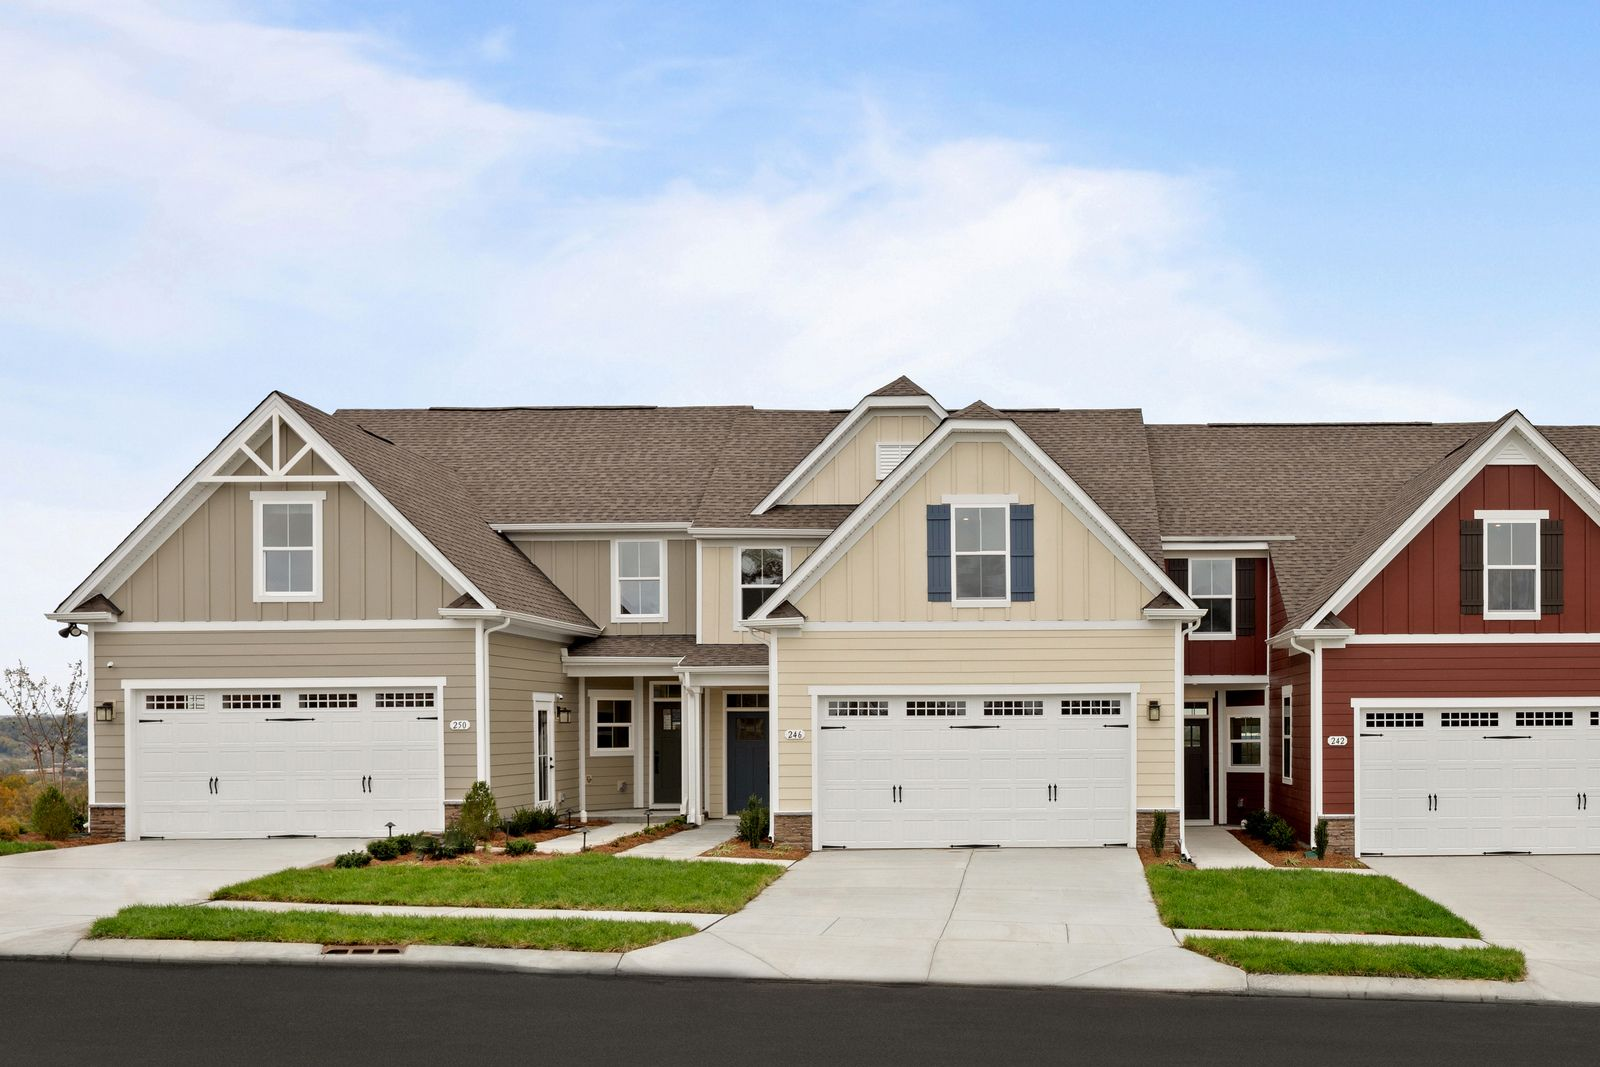 OWN A MAIN LEVEL LIVING OR MULTI LEVEL TOWNHOME IN THE FALLS—WELCOME HOME TO VILLAGES AT SYCAMORE:Cuyahoga Falls' most beautiful new community! Wooded views, spacious open plan townhomes, minutes from favorite Valley conveniences, Rt 8 & I-77!Click here to schedule your visit today!